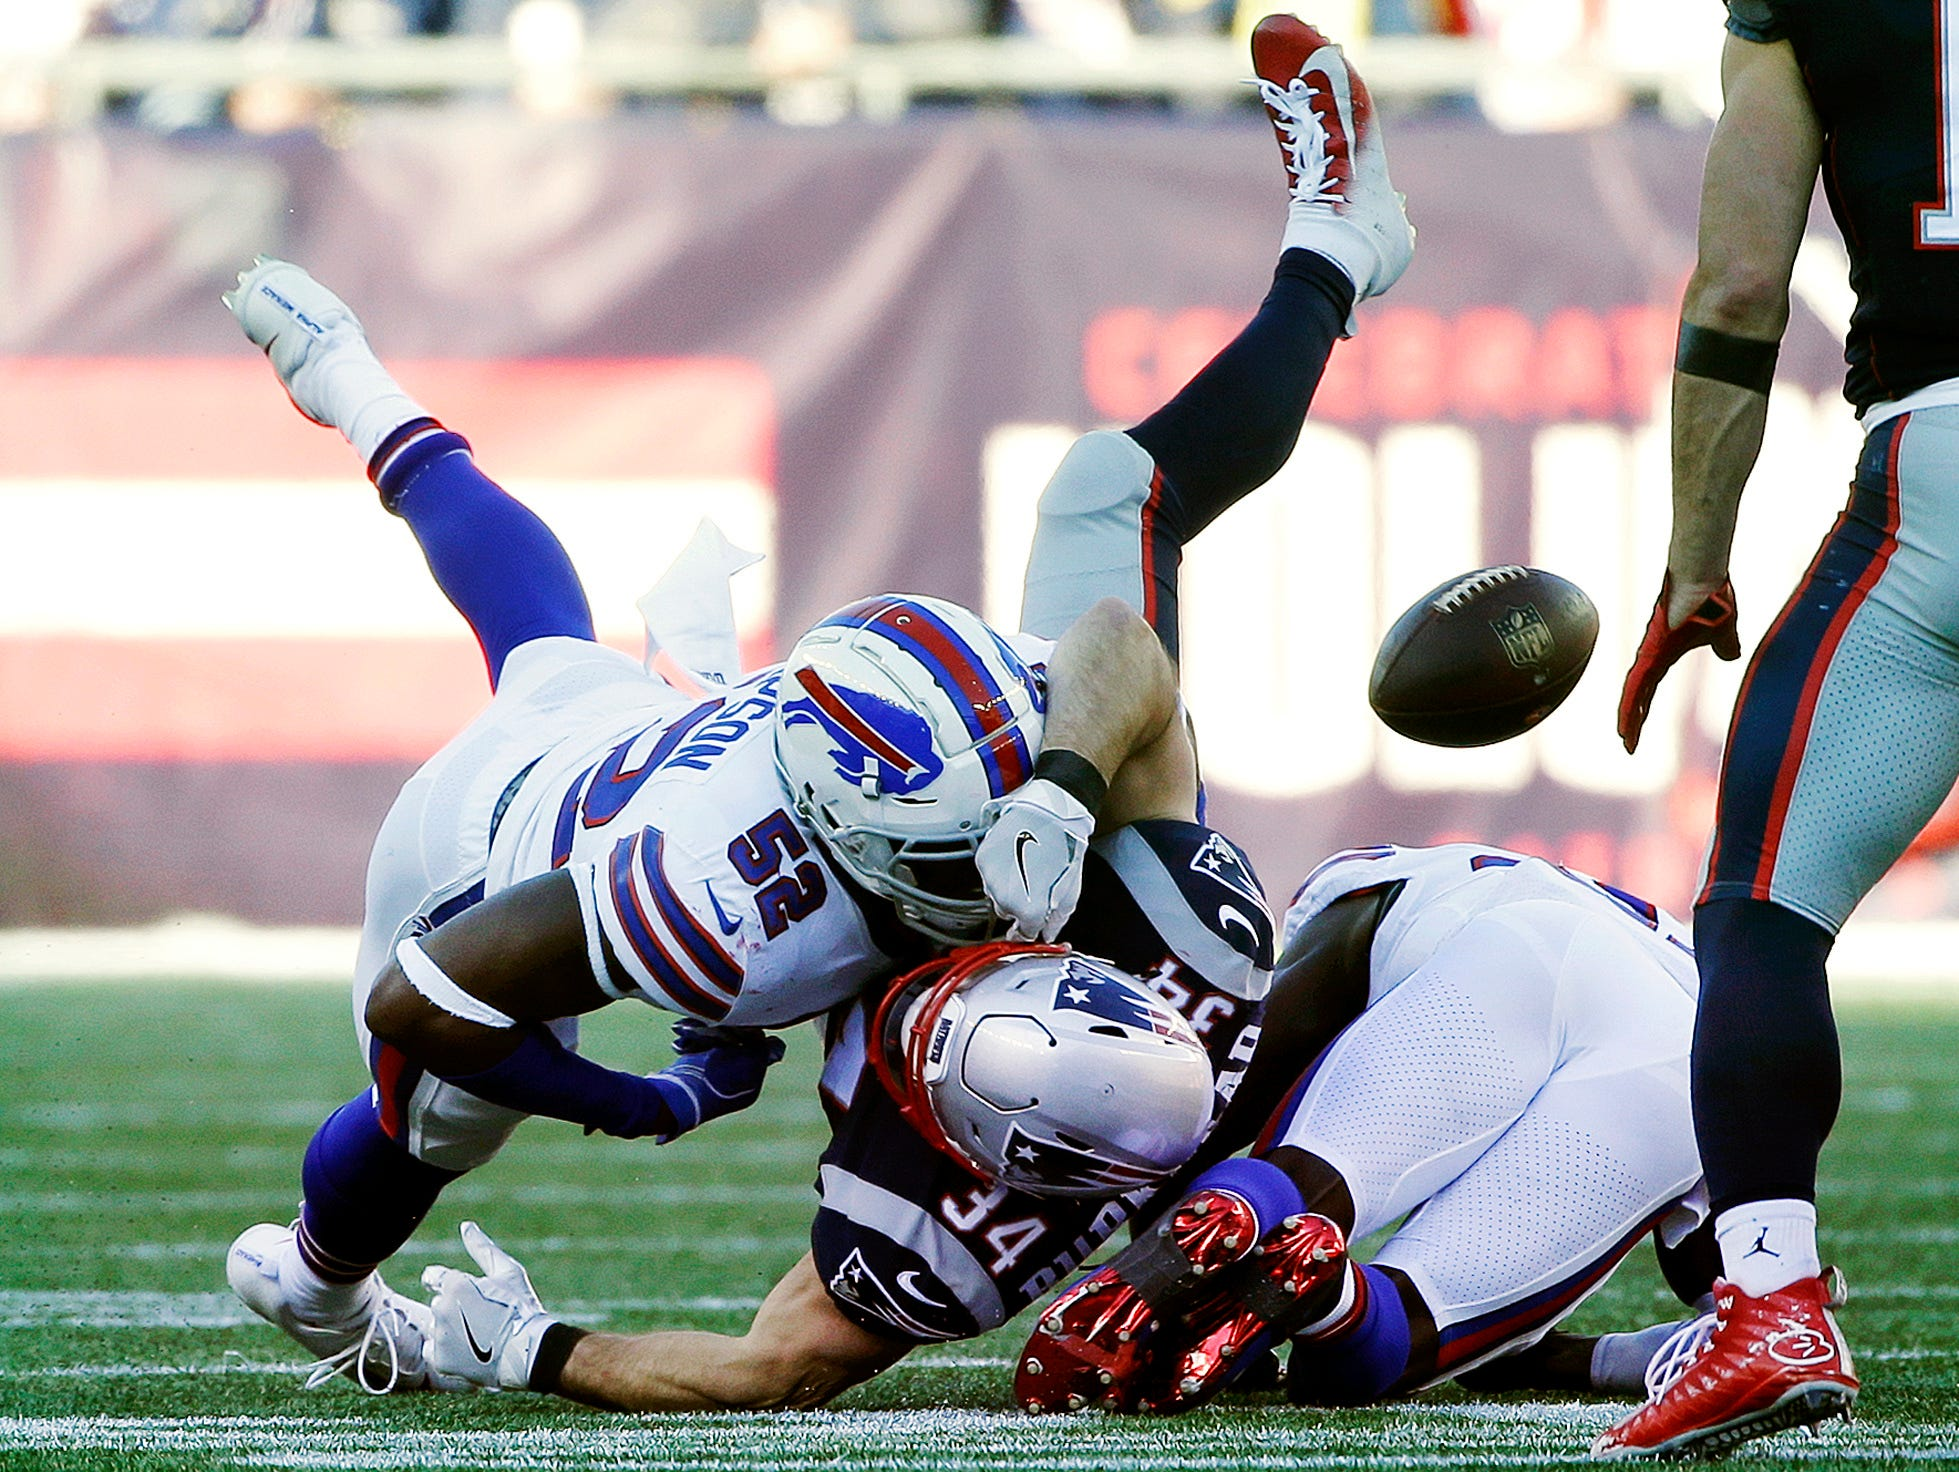 New England Patriots running back Rex Burkhead (34) fumbles on a tackle by Buffalo Bills linebacker Corey Thompson (52) during the first half of an NFL football game, Sunday, Dec. 23, 2018, in Foxborough, Mass. (AP Photo/Steven Senne)